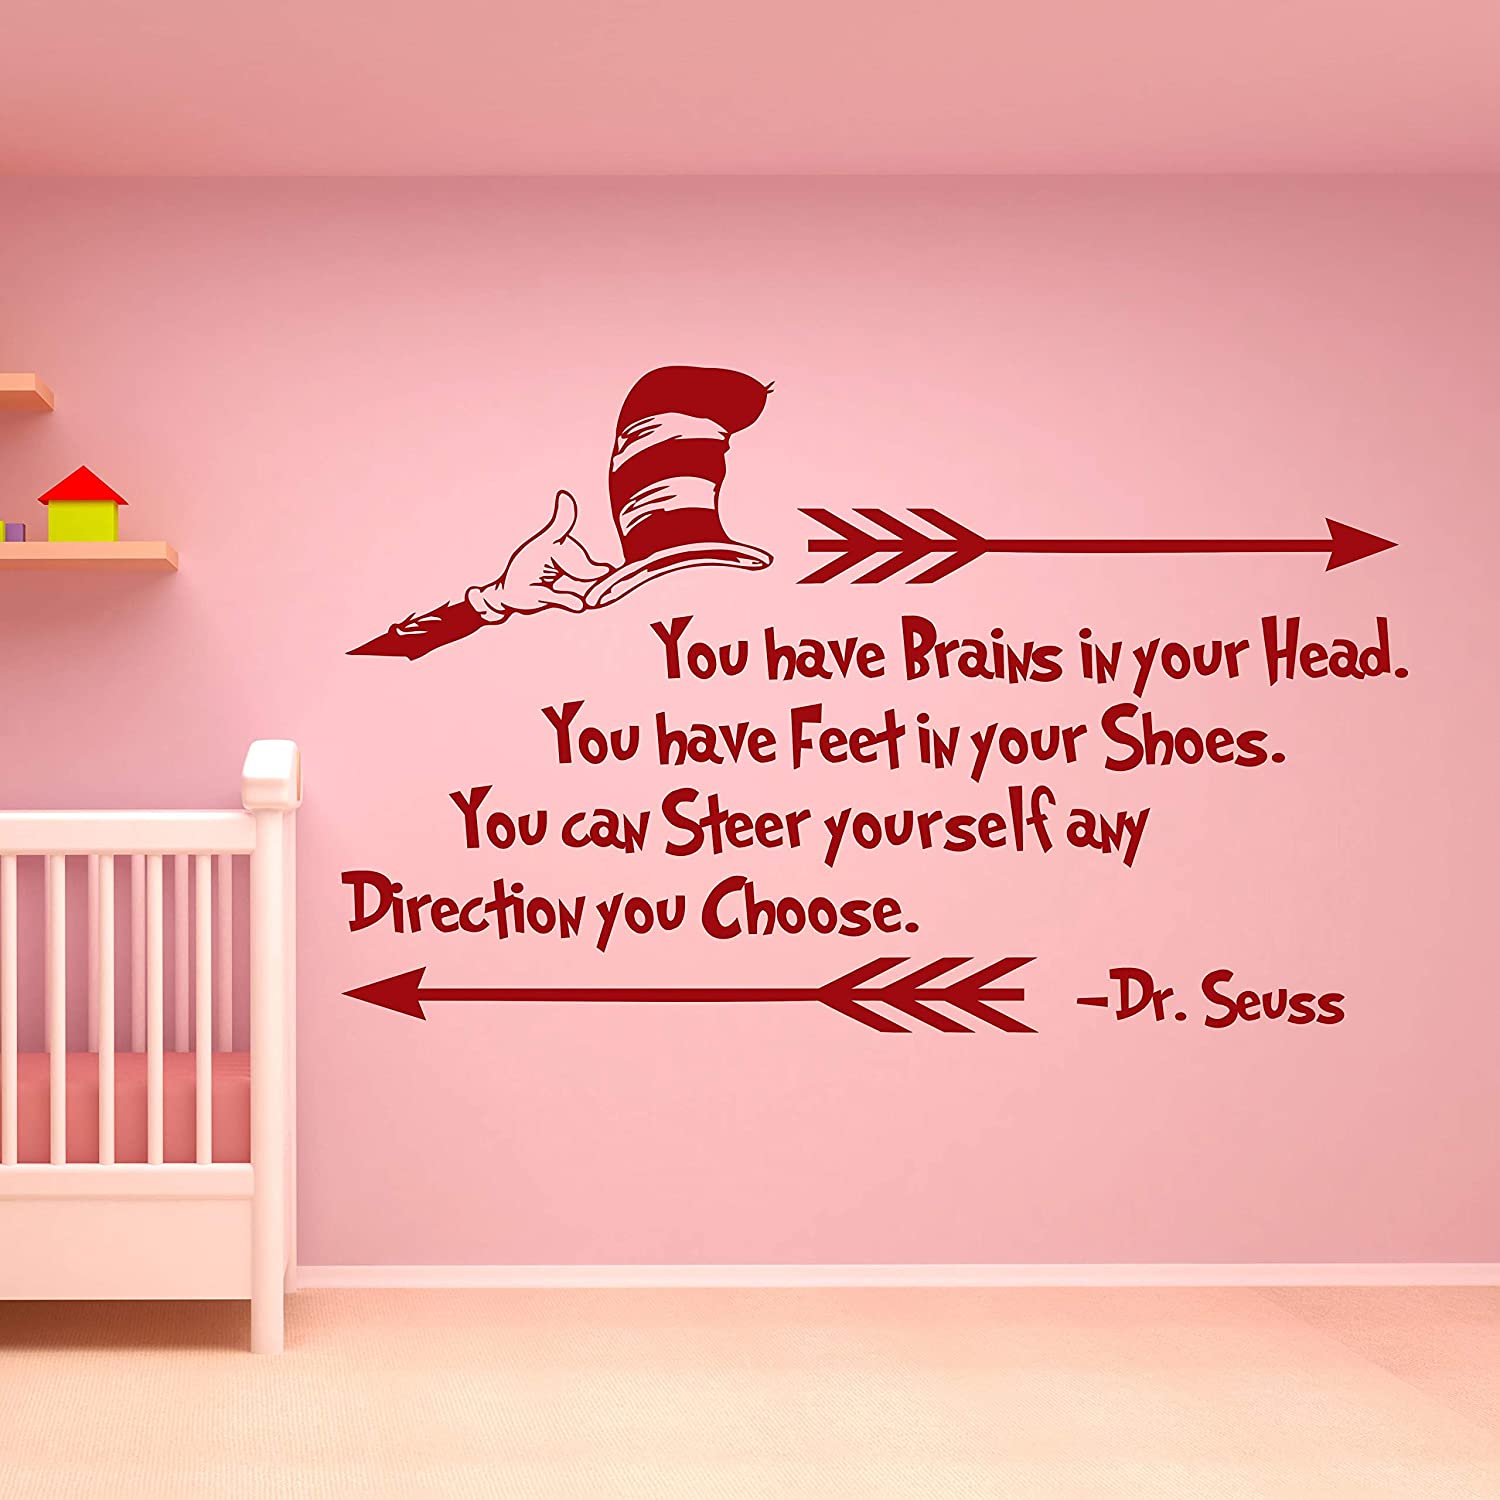 Dr Seuss Wall Decal Quote Vinyl Sticker Decals Quotes Oh The Places Youll Go Wall Decal Quote Wall Decor Nursery Bedroom Baby Room